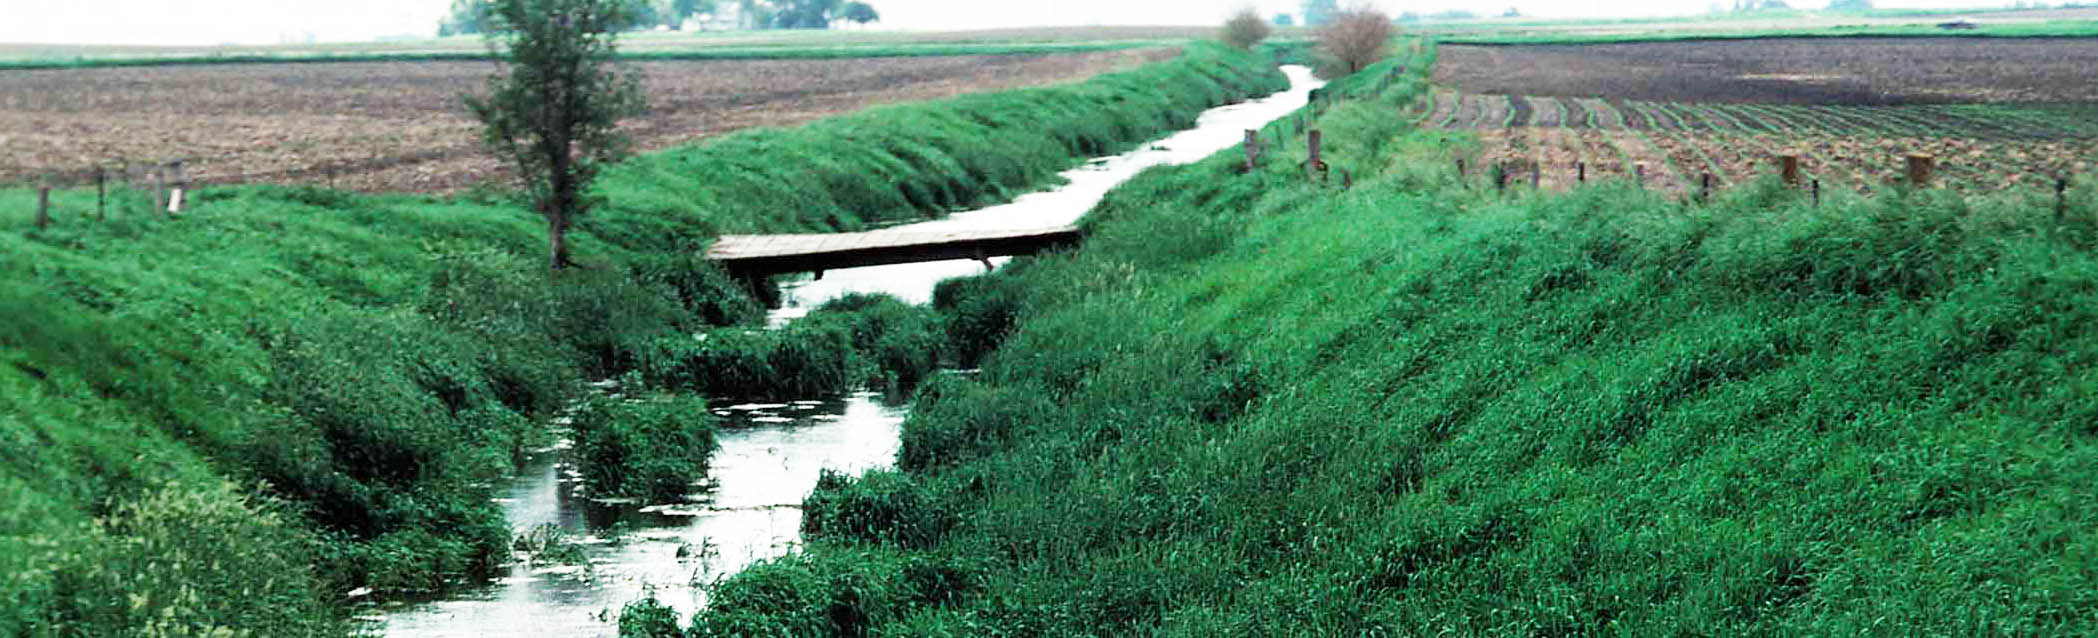 photo of drainage ditch